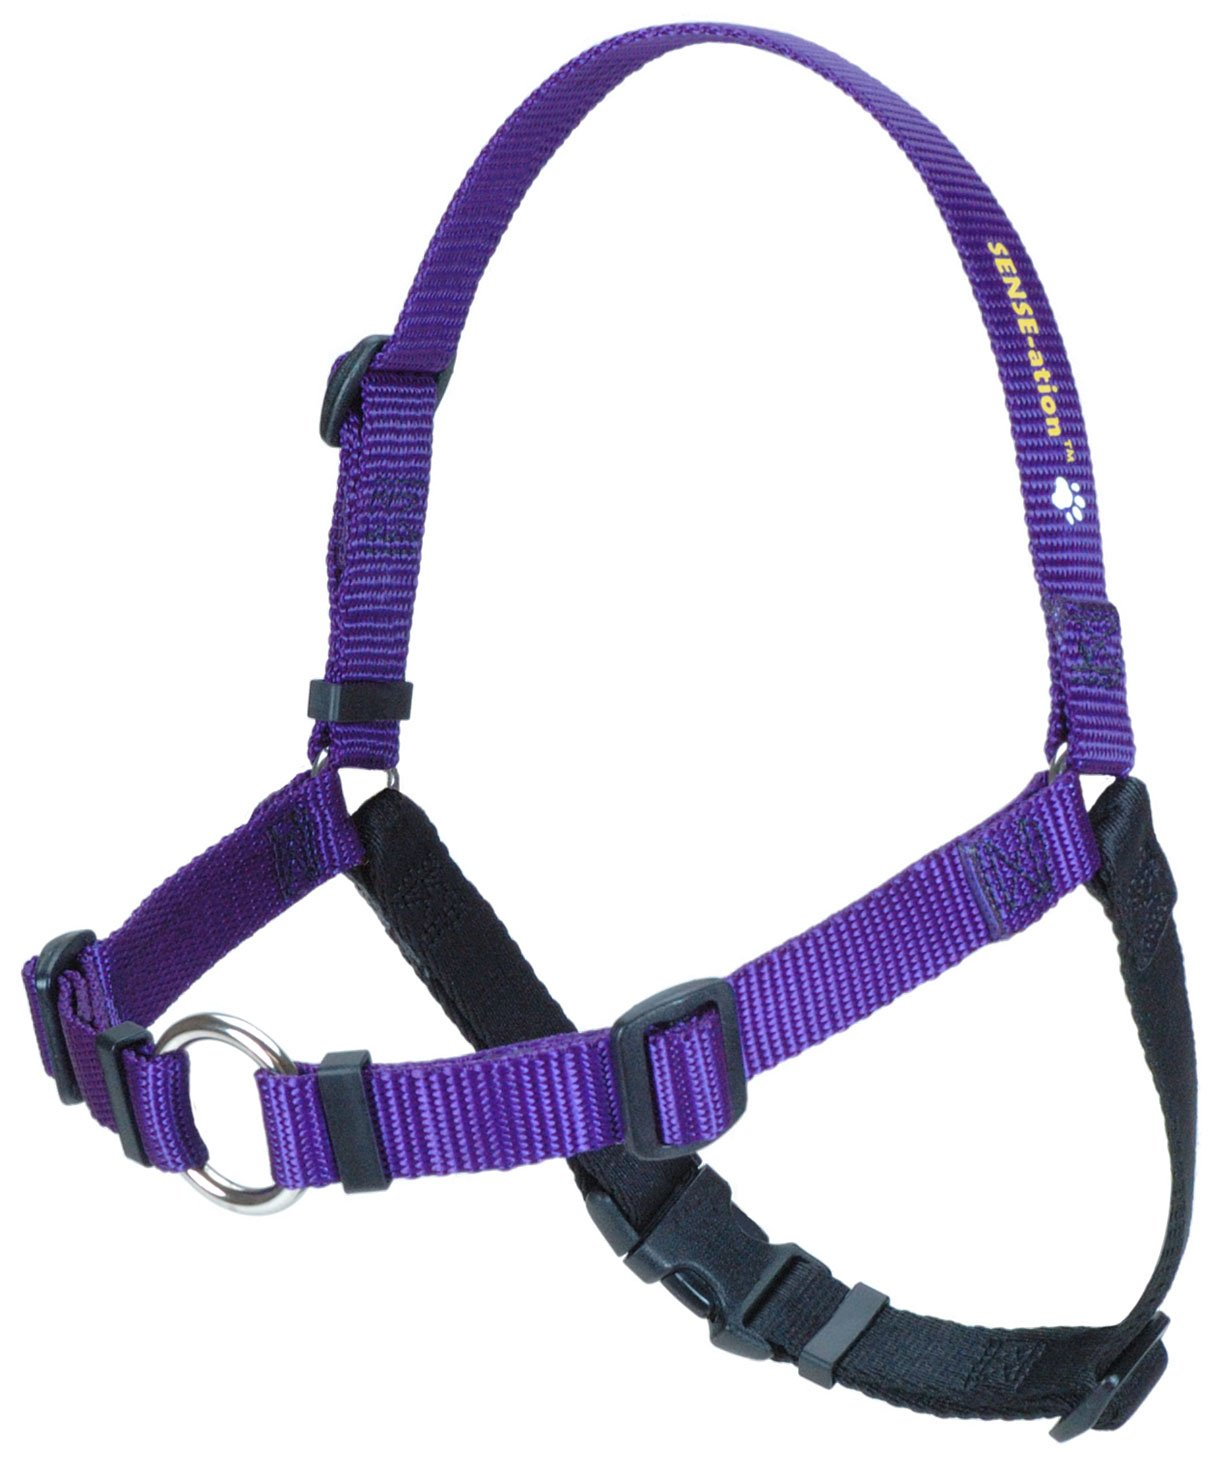 SENSE-ation No-Pull Dog Harness - Purple Medium